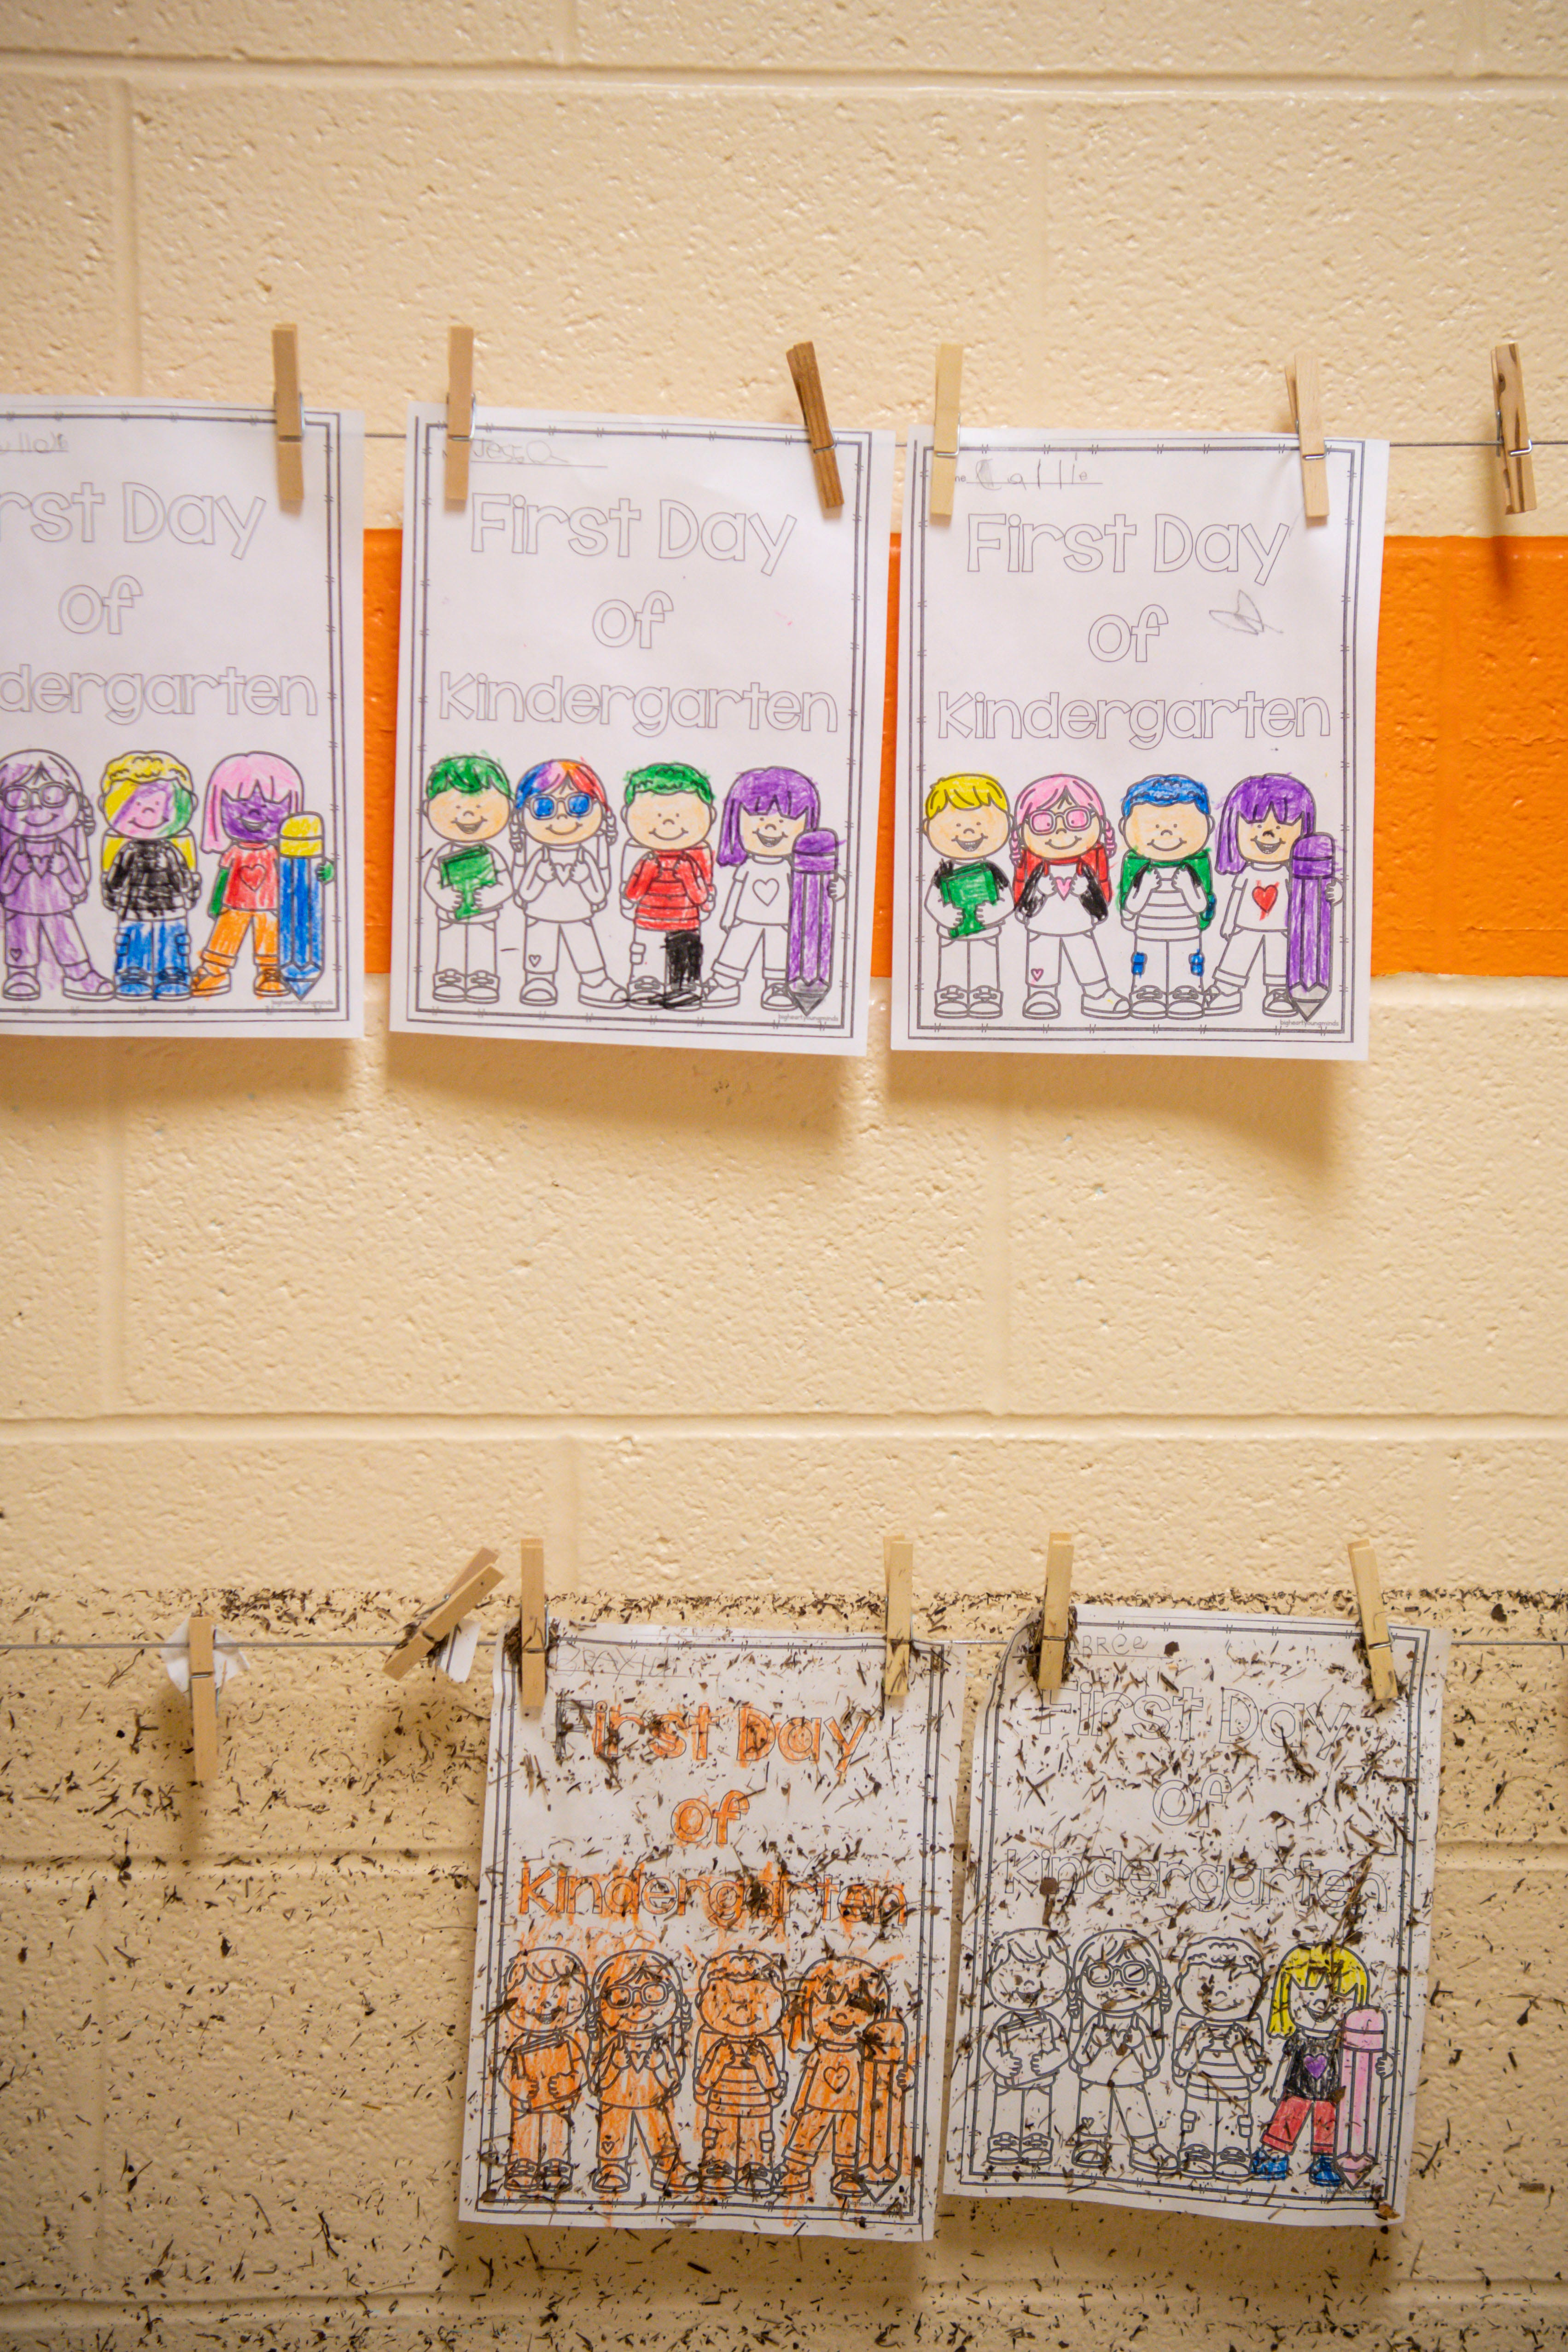 The water line of the flooding is seen in the hallway of the flood damaged Waverly Elementary School as seen on Wednesday, Aug. 25, 2021, after flash flooding swept through the town of Waverly, Tenn.